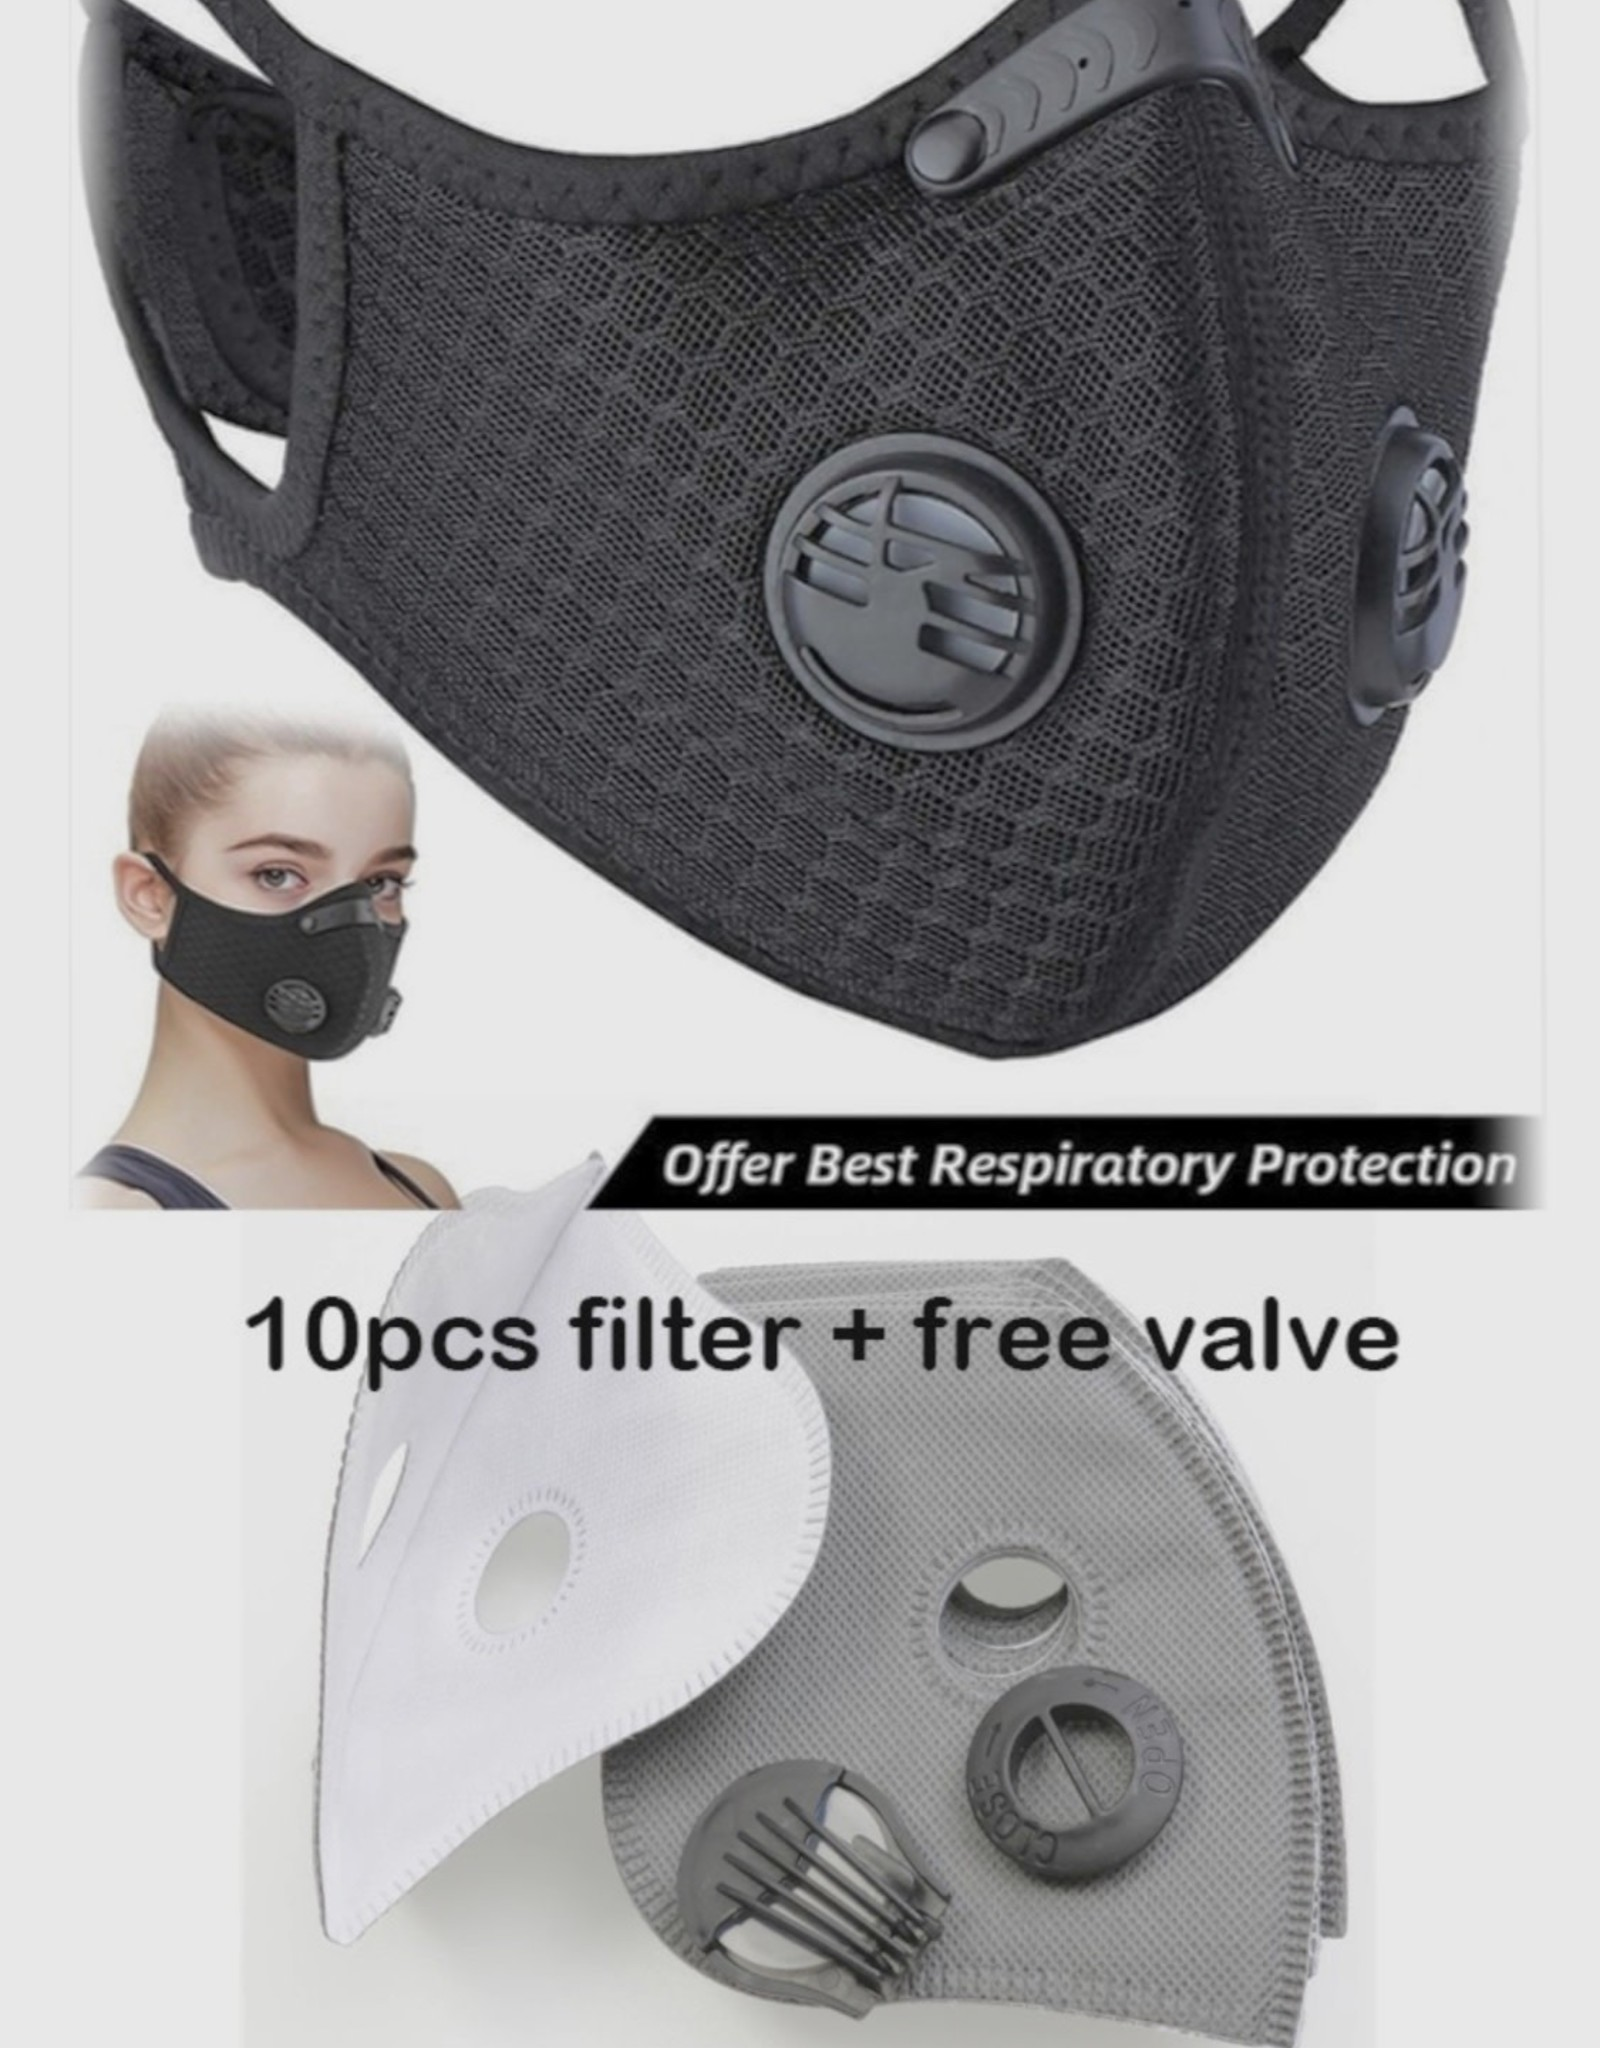 FACE MASK SPORT 10-PACK 5 LAYER FILTERS (no mask included)